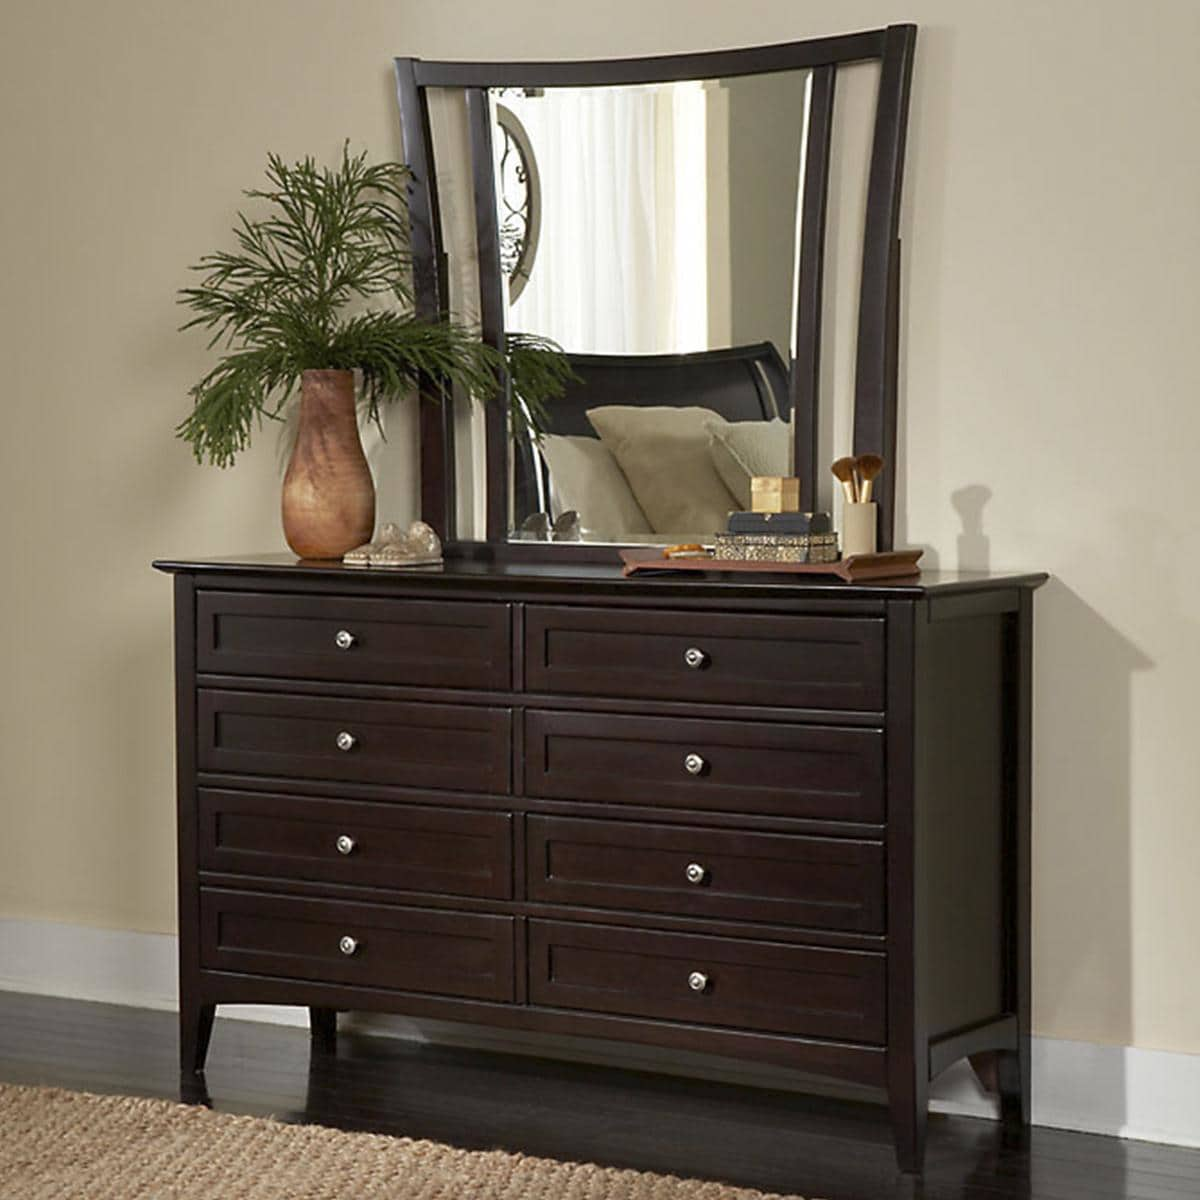 Picture of: Low Long Dresser